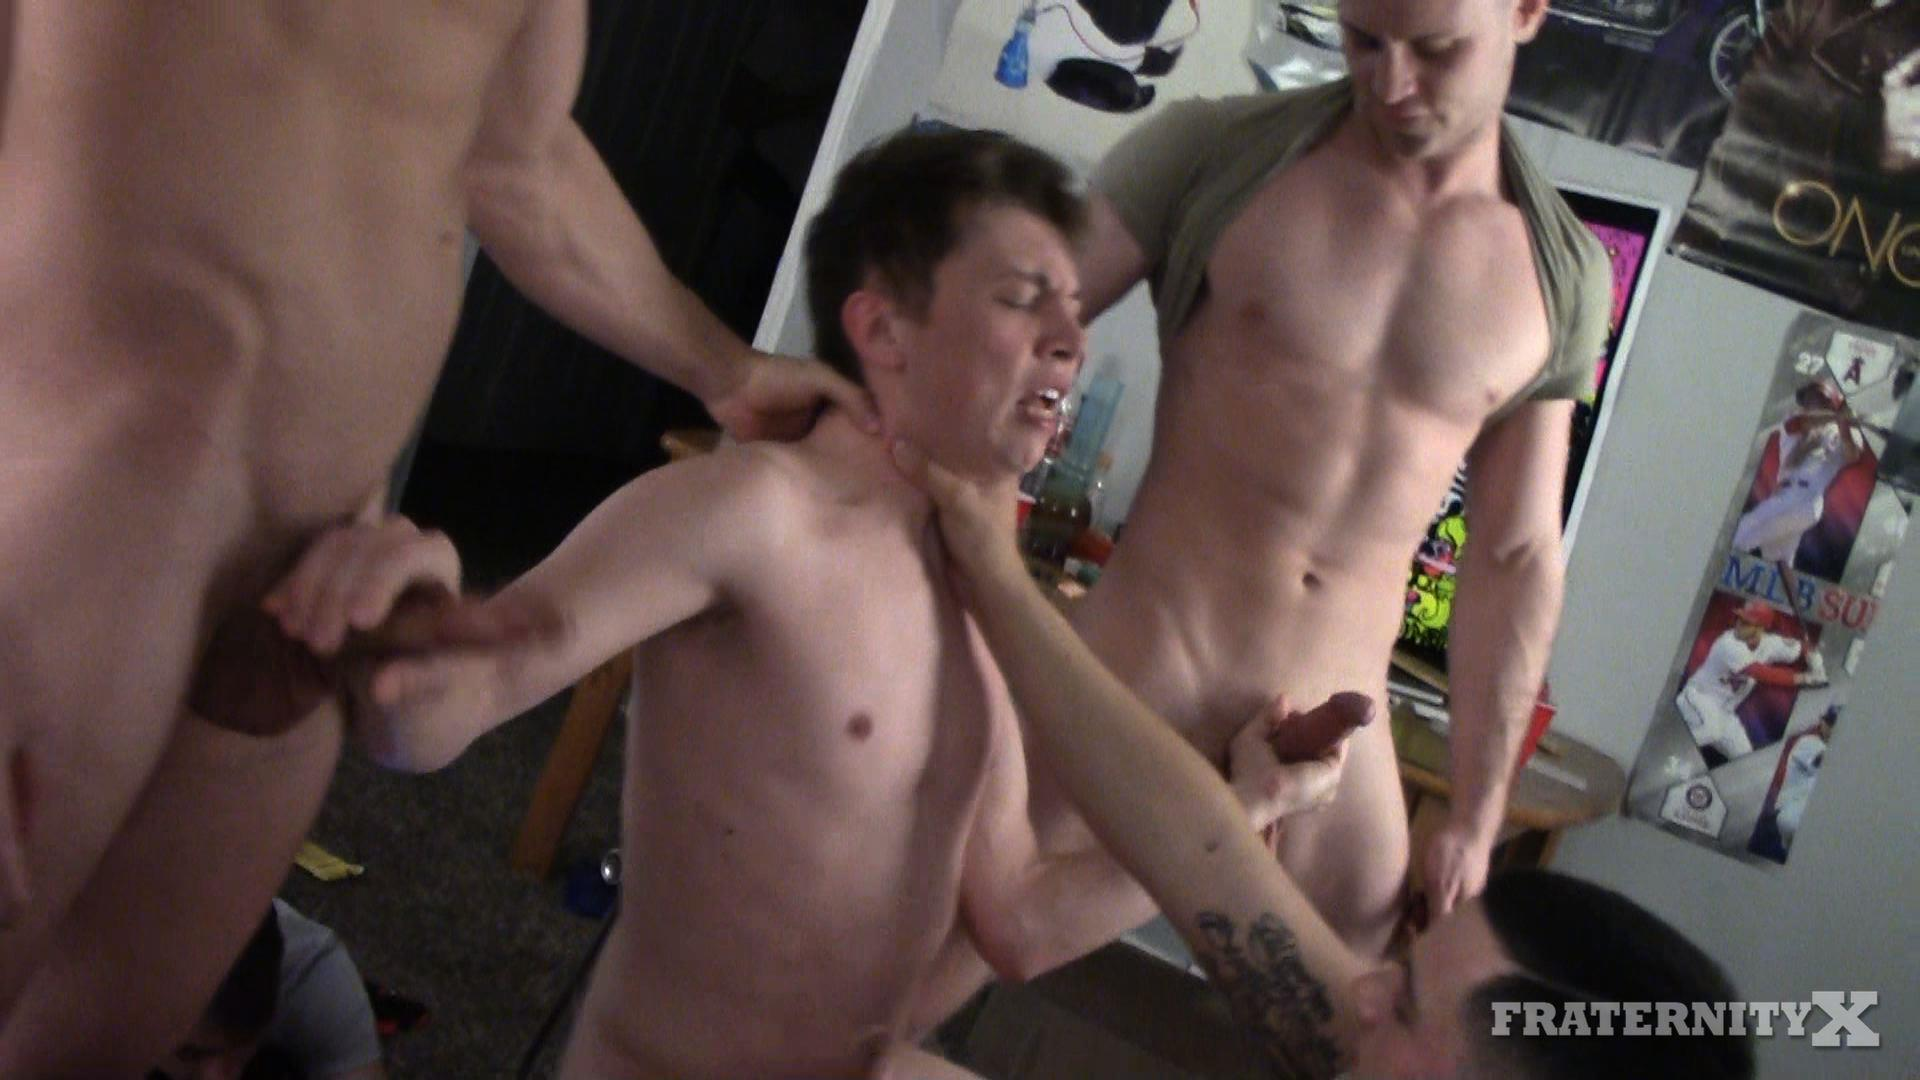 Fraternity-X-Naked-Frat-Guys-Bareback-Gang-Bang-Sex-Video-09 Visitor To The Fraternity House Gets Several Big Raw Dicks Up The Ass